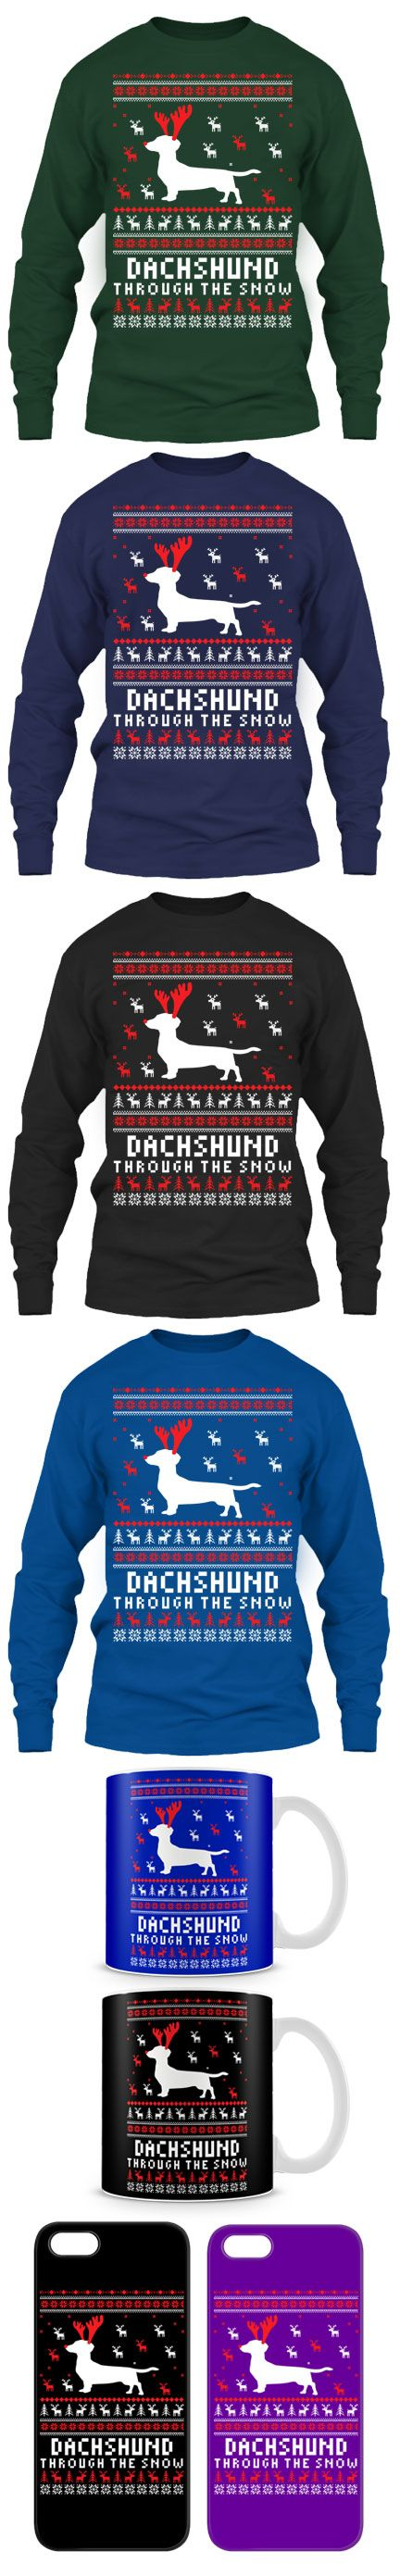 Dachshund Ugly Christmas Sweater! Click The Image To Buy It Now or Tag Someone You Want To Buy This For.